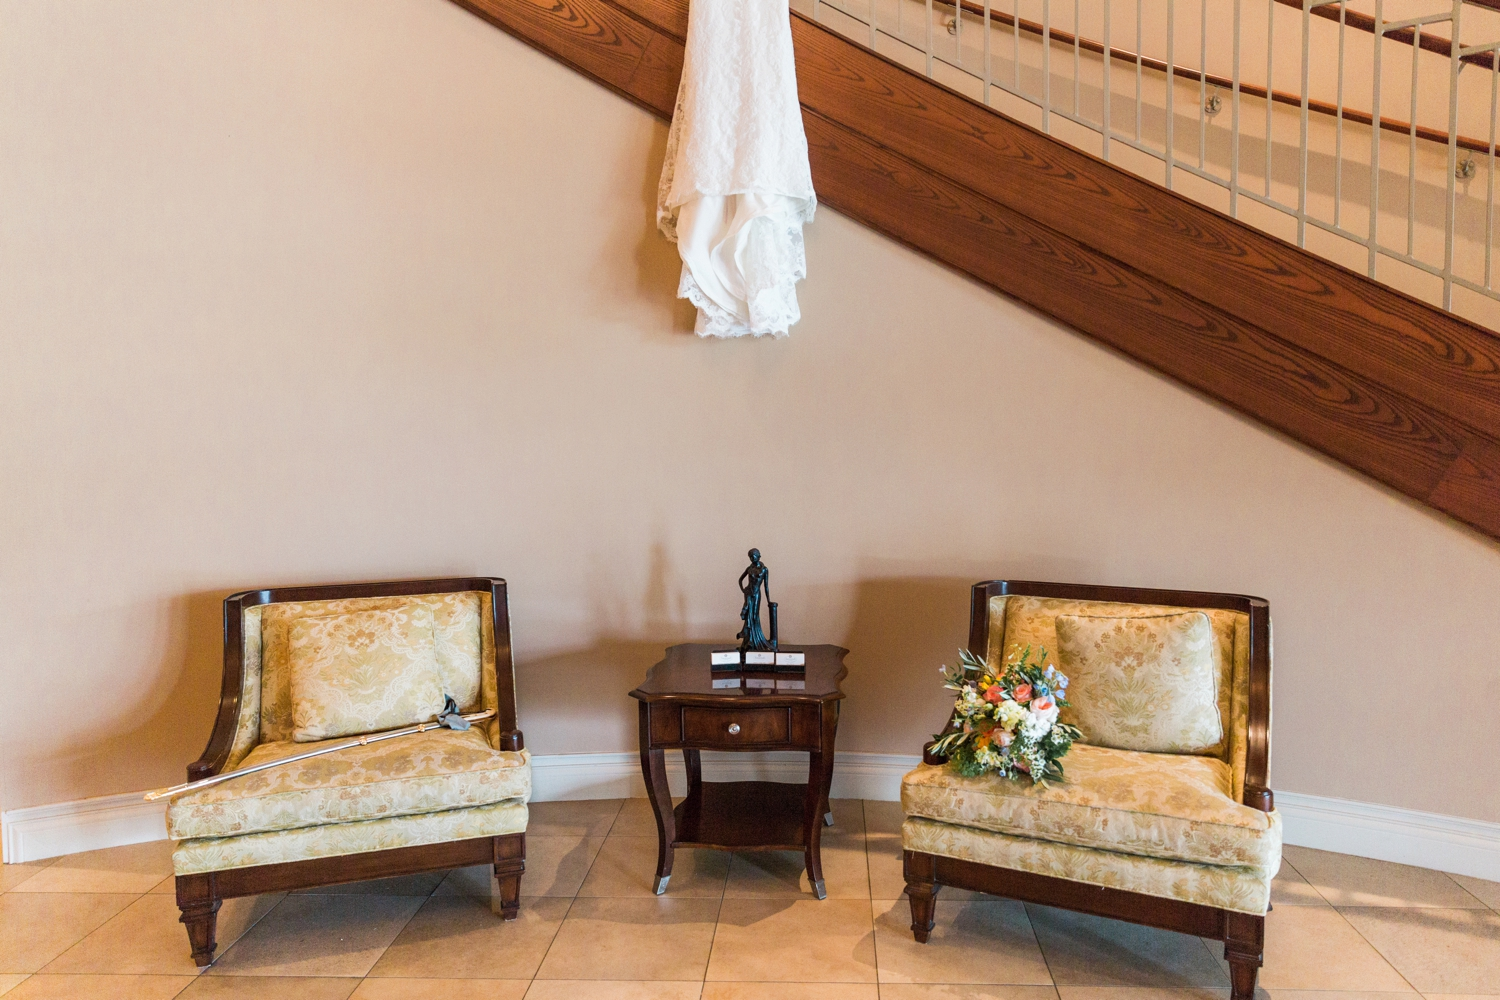 Wedding-at-The-Savannah-Center-West-Chester-Ohio-Photography-Chloe-Luka-Photography_7335.jpg